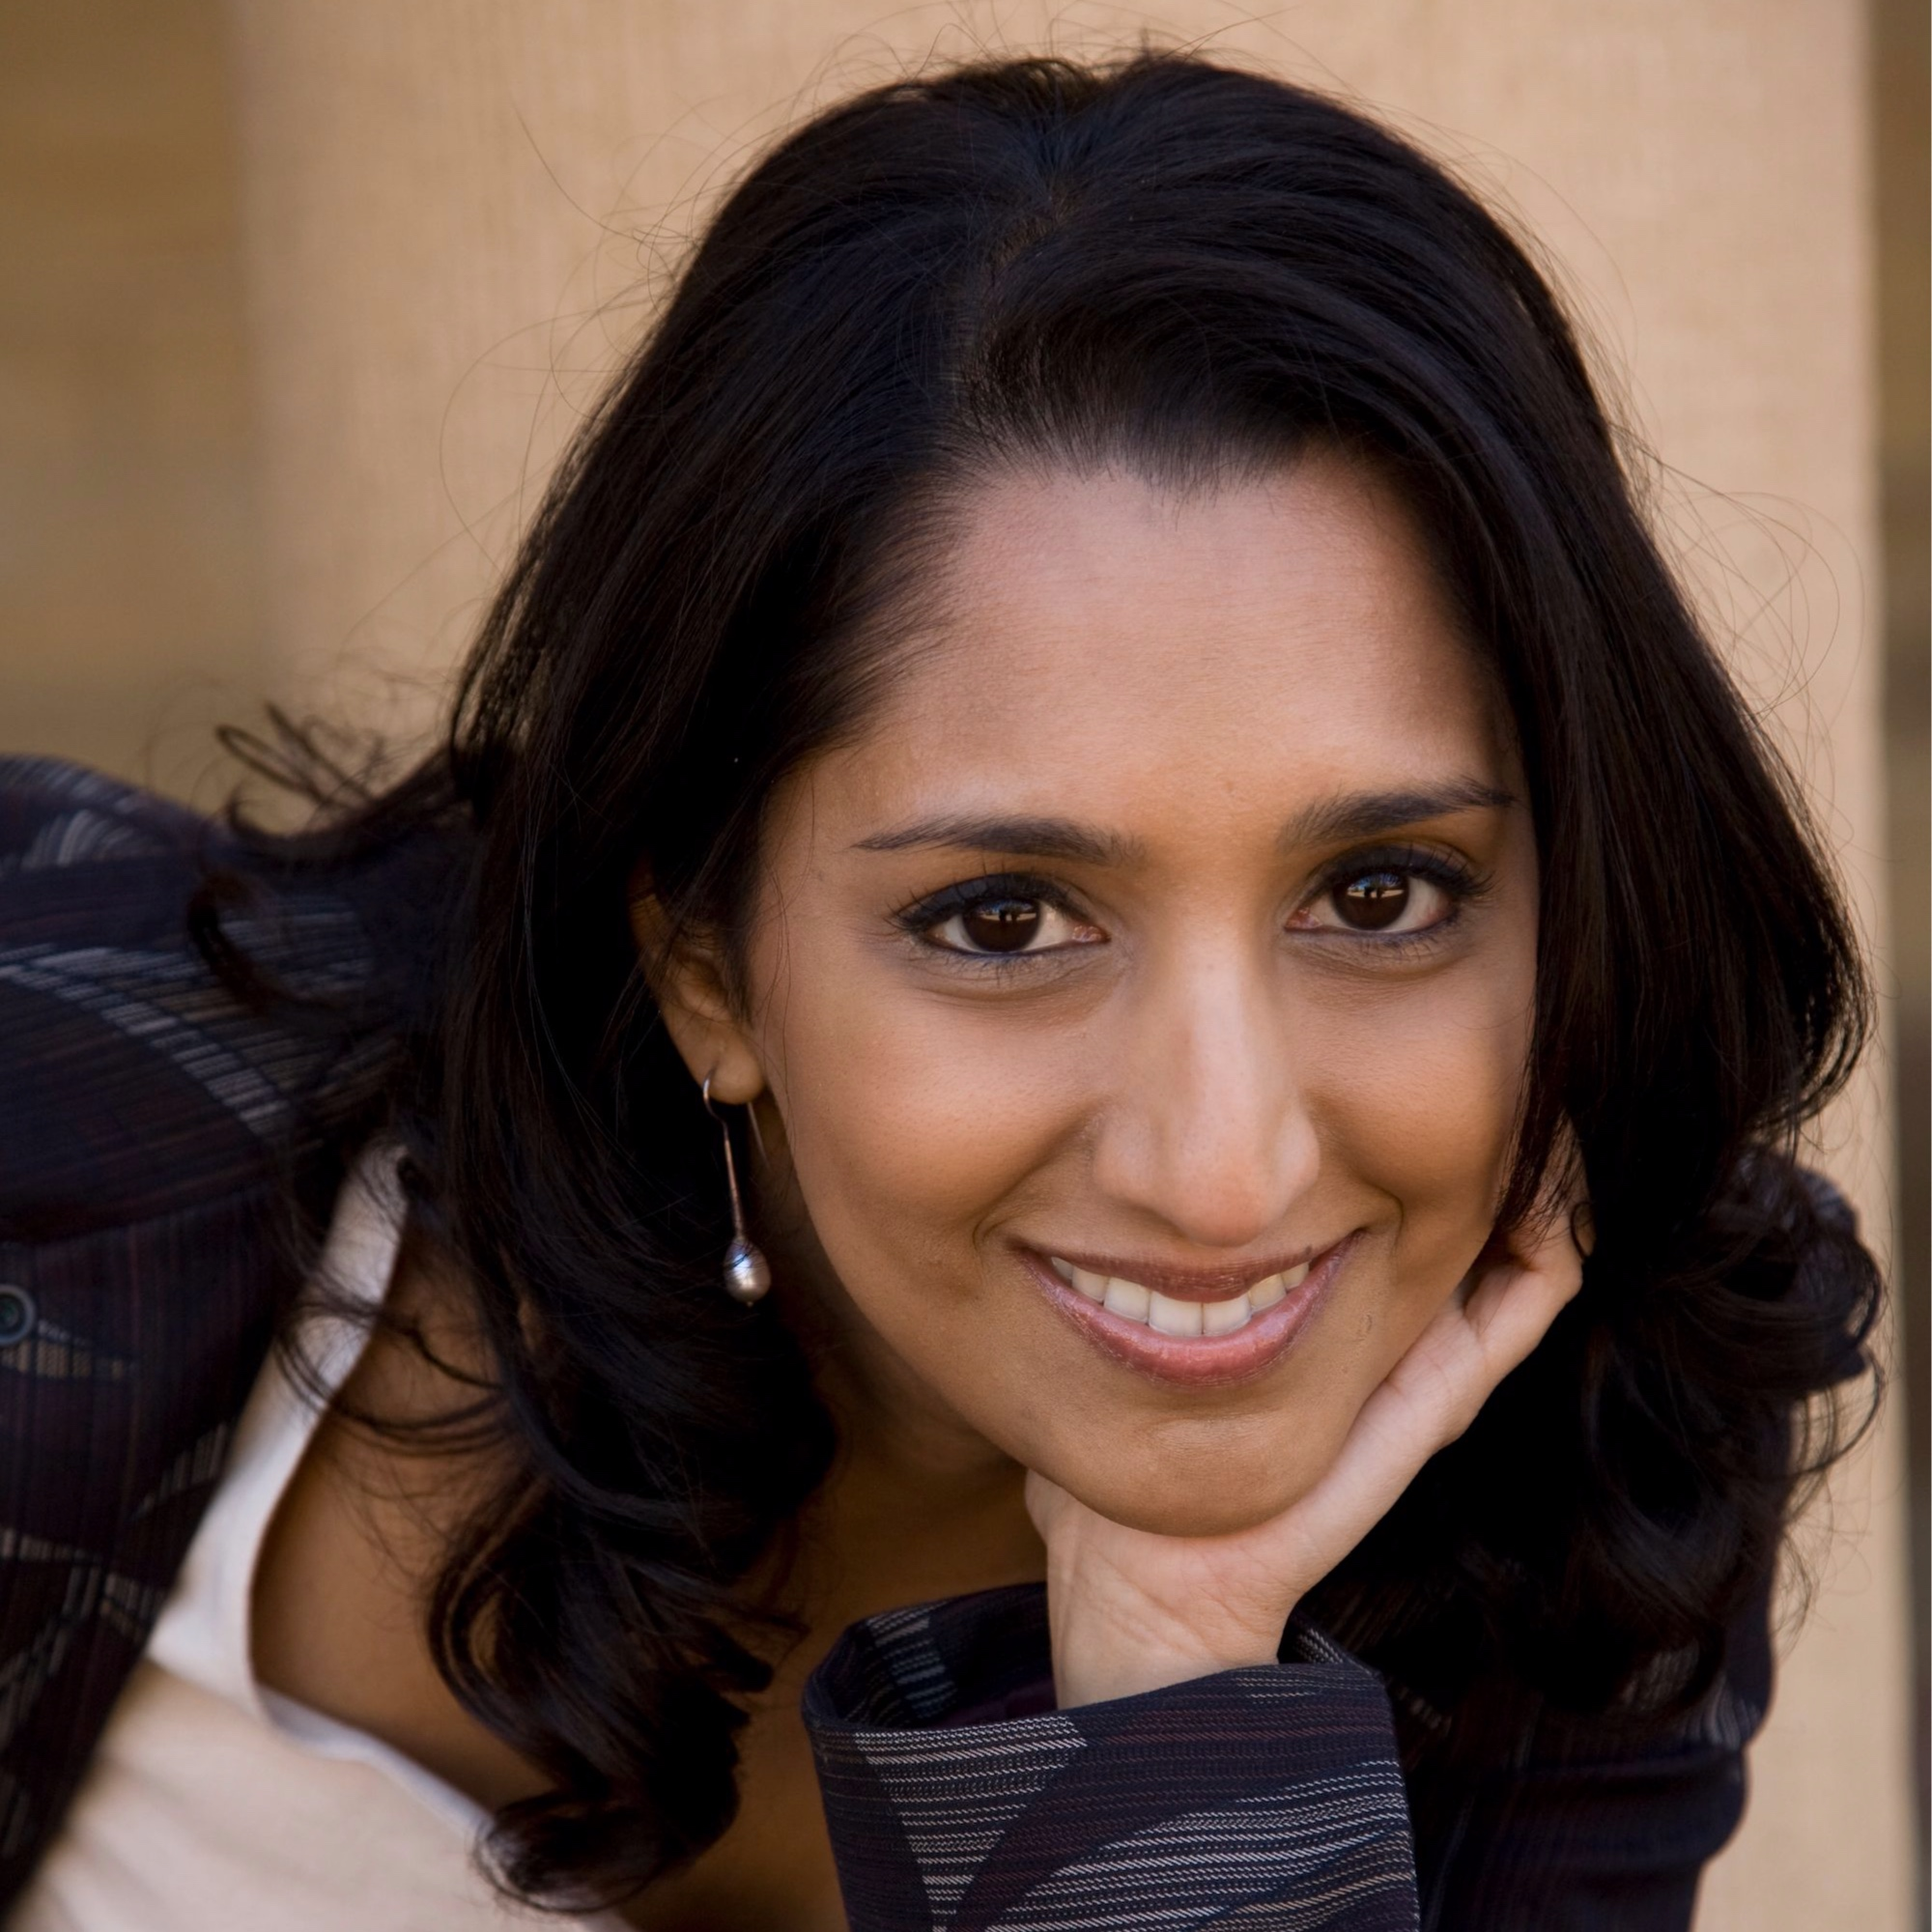 """Dhaya Lakshminarayanan is the 2016 winner of the Liz Carpenter Political Humor Award (previously awarded to Samantha Bee, Wanda Sykes and satirist/humorist Mark Russell) presented by the National Women's Political Caucus. Comedy Central Asia crowned her the Grand Prize Winner of """"The Ultimate Comedy Challenge"""" filmed in Singapore. She is the sole subject of the documentary """"NerdCool"""" which premiered at the LA Comedy Festival in 2018  KQED named her one of the twenty """"Women to Watch"""" a series celebrating women artists, creatives and makers in the San Francisco Bay Area who are pushing boundaries in 2016. She was named one of """"The Bay Area's 11 Best Standup Comedians"""" in 2016 and """"13 San Francisco Standup Comedians to Go See Now"""" in 2018 by SFist. The SF Weekly named her one of the """"16 Bay Area performers to watch in 2016."""" The San Francisco Bay Guardian named her Best Comedian 2013 in the """"Best of the Bay"""" Readers' Poll.  She has opened/featured for or worked with the following: Janeane Garofalo, Marc Maron, Greg Behrendt, Jello Biafra, the late Dick Gregory, Anthony Jeselnik, Maz Jobrani, and Greg Proops. Dhaya introduced former Vice President Al Gore at an event. He then laughed onstage at her joke, so technically she once opened for Al Gore. She has performed internationally in Shanghai, China; Kuala Lumpur Malaysia, and Singapore. In the US she has been an invited performer at Bridgetown Comedy Festival (Portland, OR), San Francisco Sketchfest, the Boston Comedy Festival (semifinalist), the Limestone Comedy Festival (Bloomington, IN) and Laugh Your Asheville Off (Asheville, NC).  Dhaya is also a TV host and storyteller. She hosted the premier year of the Emmy award-winning series High School Quiz Show on PBS's WGBH. She is a frequent comedic storyteller on NPR's Snap Judgment and has appeared live in Austin on The Risk podcast. She is currently the host of San Francisco's monthly Moth StorySLAM after winning a Moth StorySLAM and competing in the GrandSLAM."""